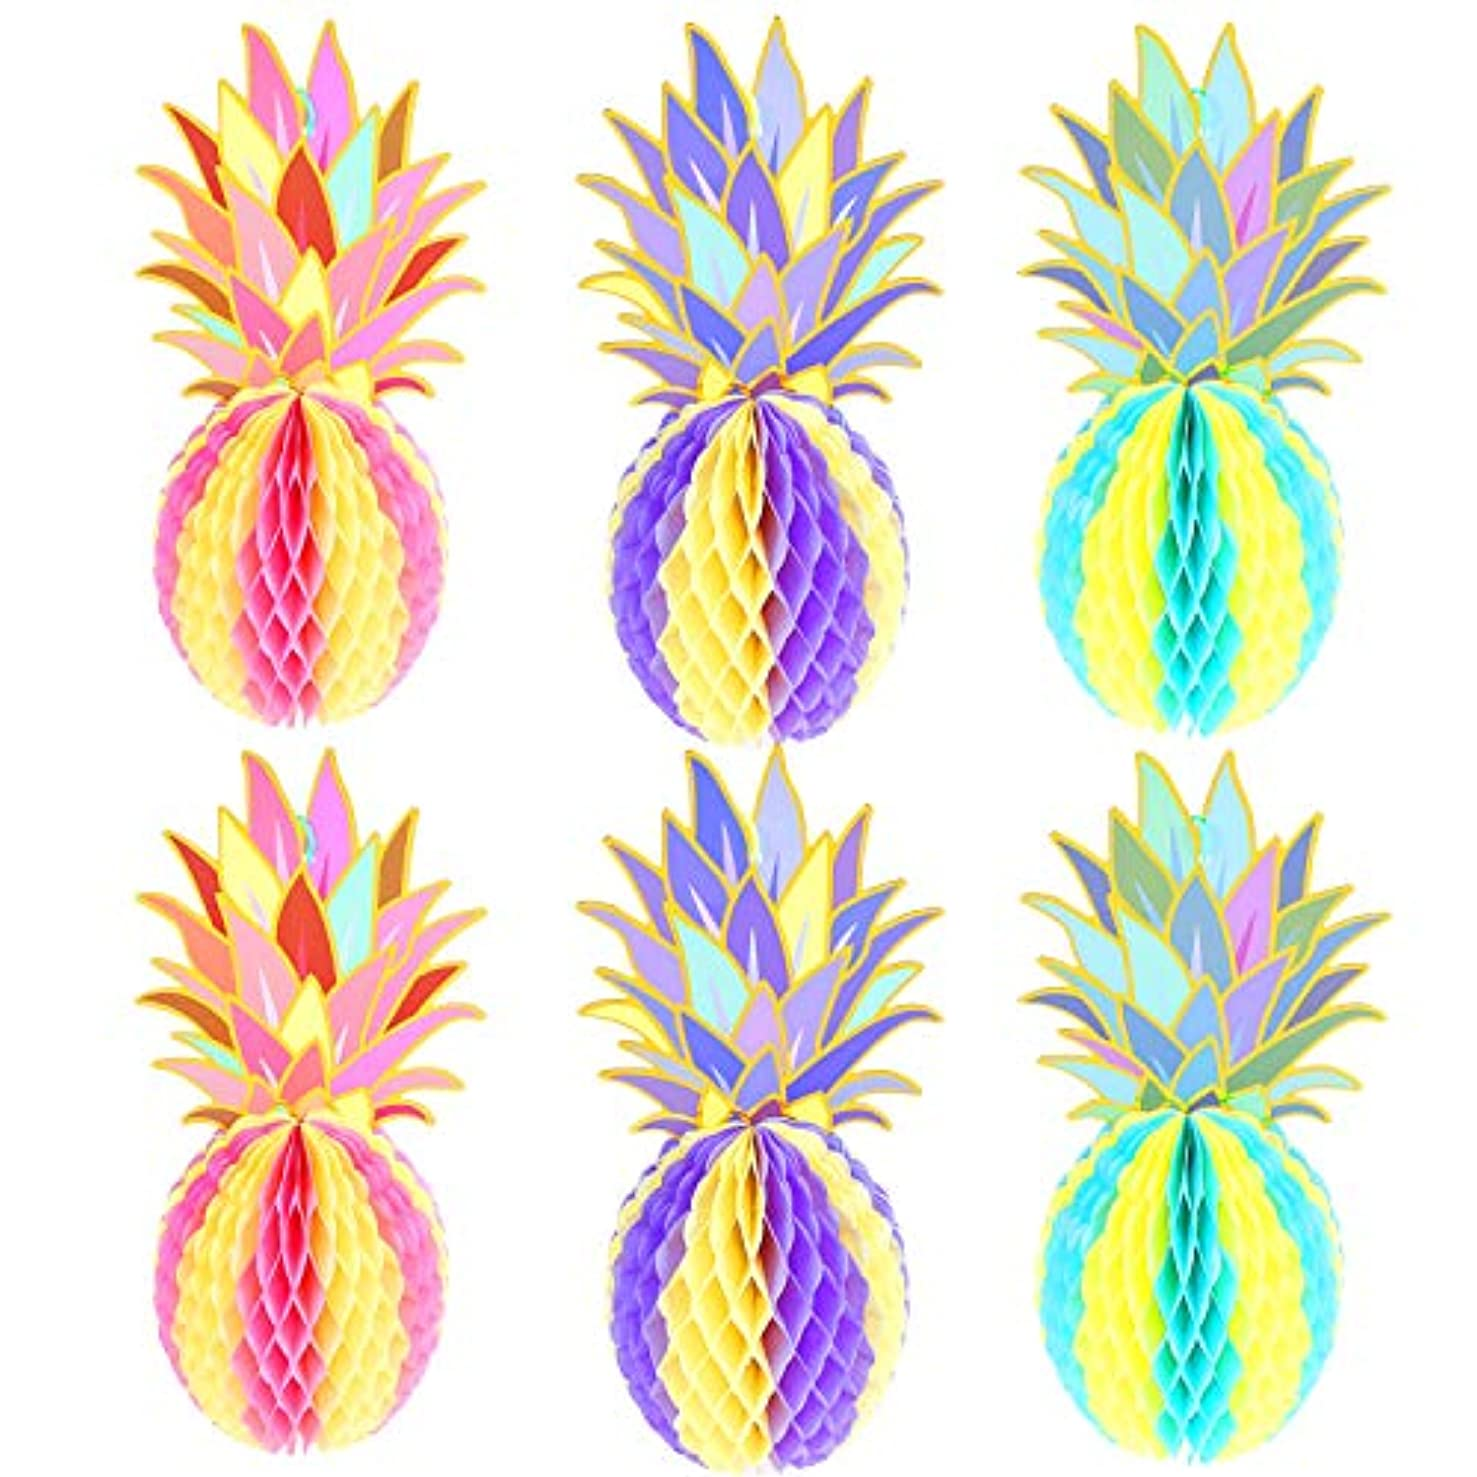 MeiMeiDa 6 Pcs 12 Inch Colorful Pineapple Honeycomb Centerpieces, Tissue Paper Pineapple Table Hanging Decoration for Tropical Hawaiian Luau Party Supplies Favors Wedding Home Decor